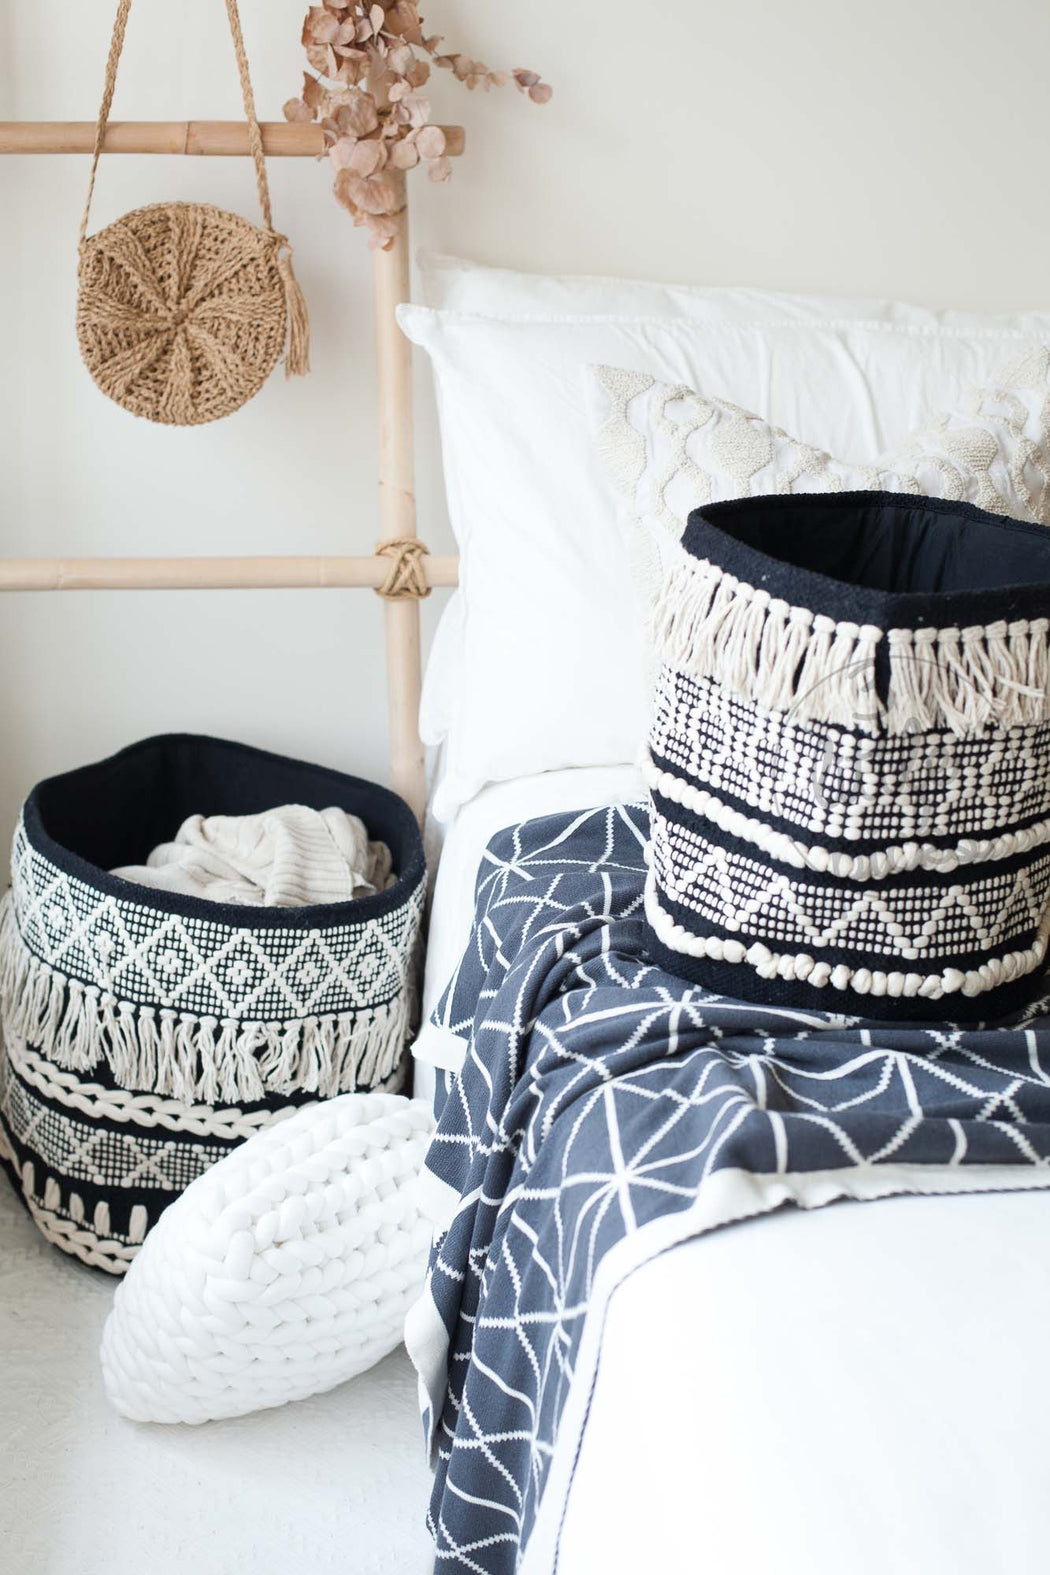 Boho Black And White Cotton Basket, Storage, Hübsch - 3LittlePicks